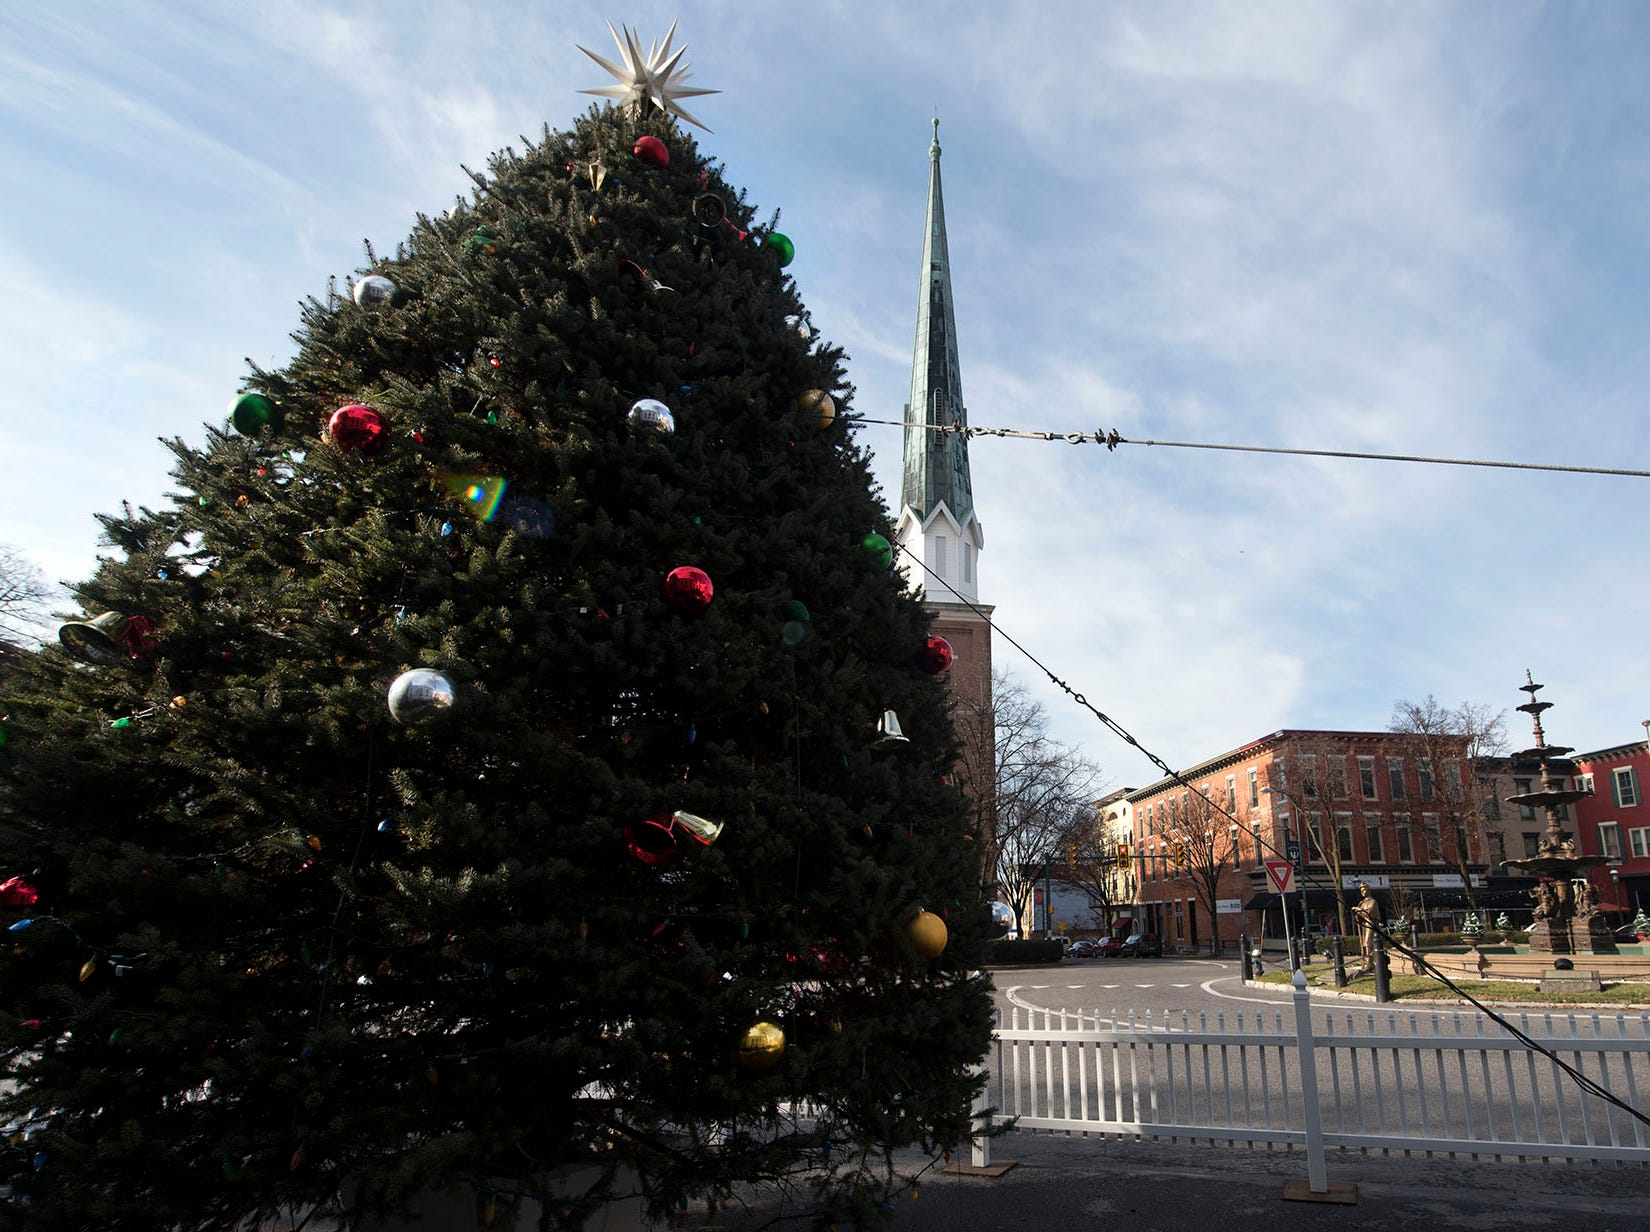 Chambersburg Christmas tree is on Memorial Square in Downtown Chambersburg.